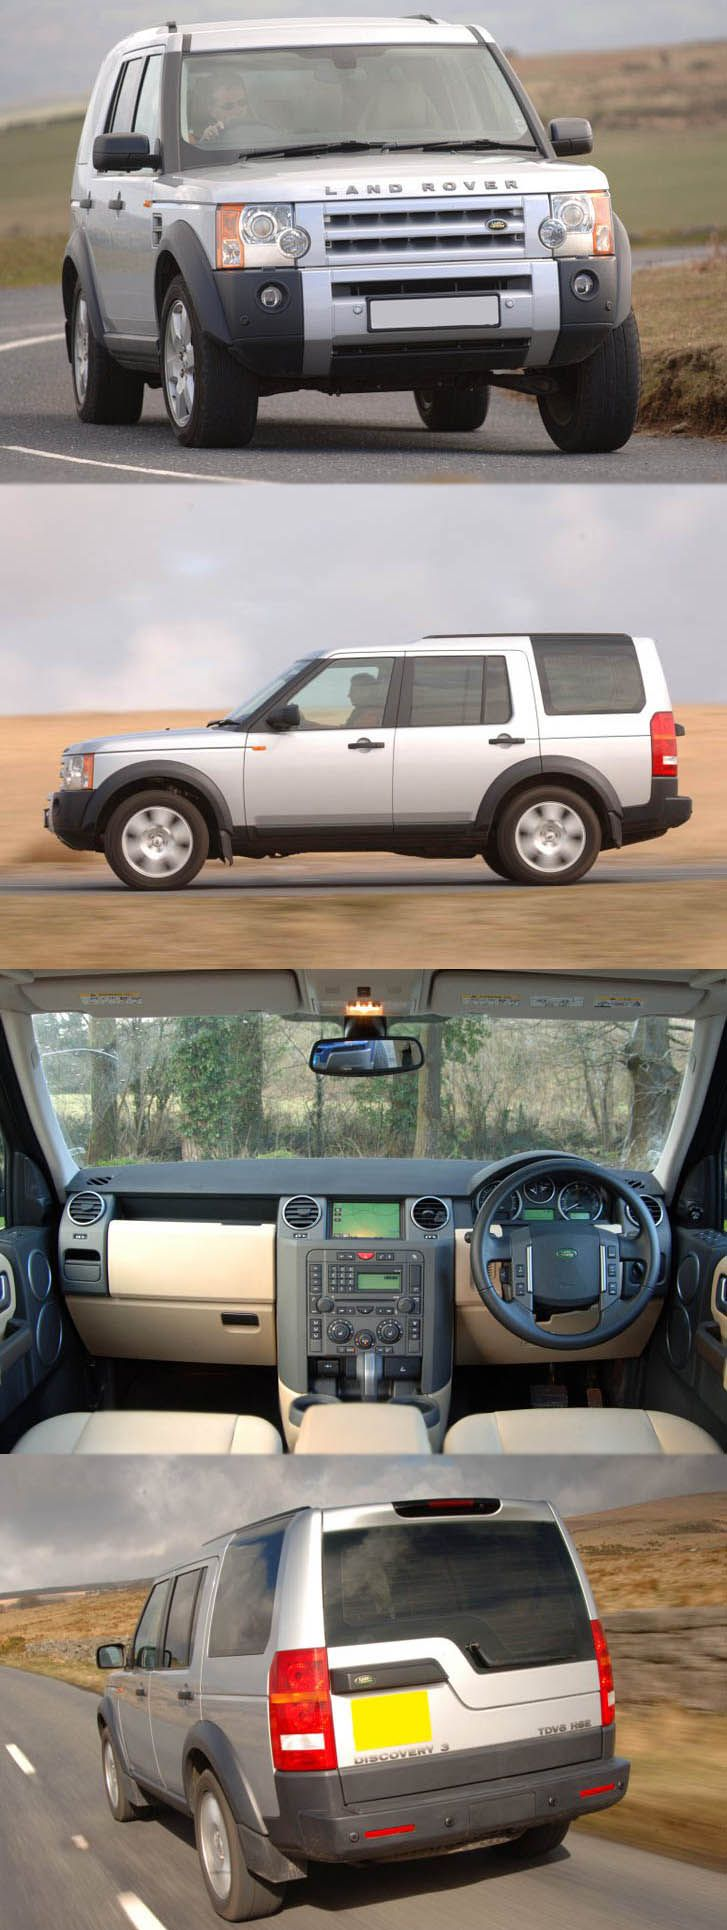 A REVIEW OF THE USED LAND ROVER DISCOVERY For more detail:https://www.rangerovergearbox.co.uk/blog/review-used-land-rover-discovery/